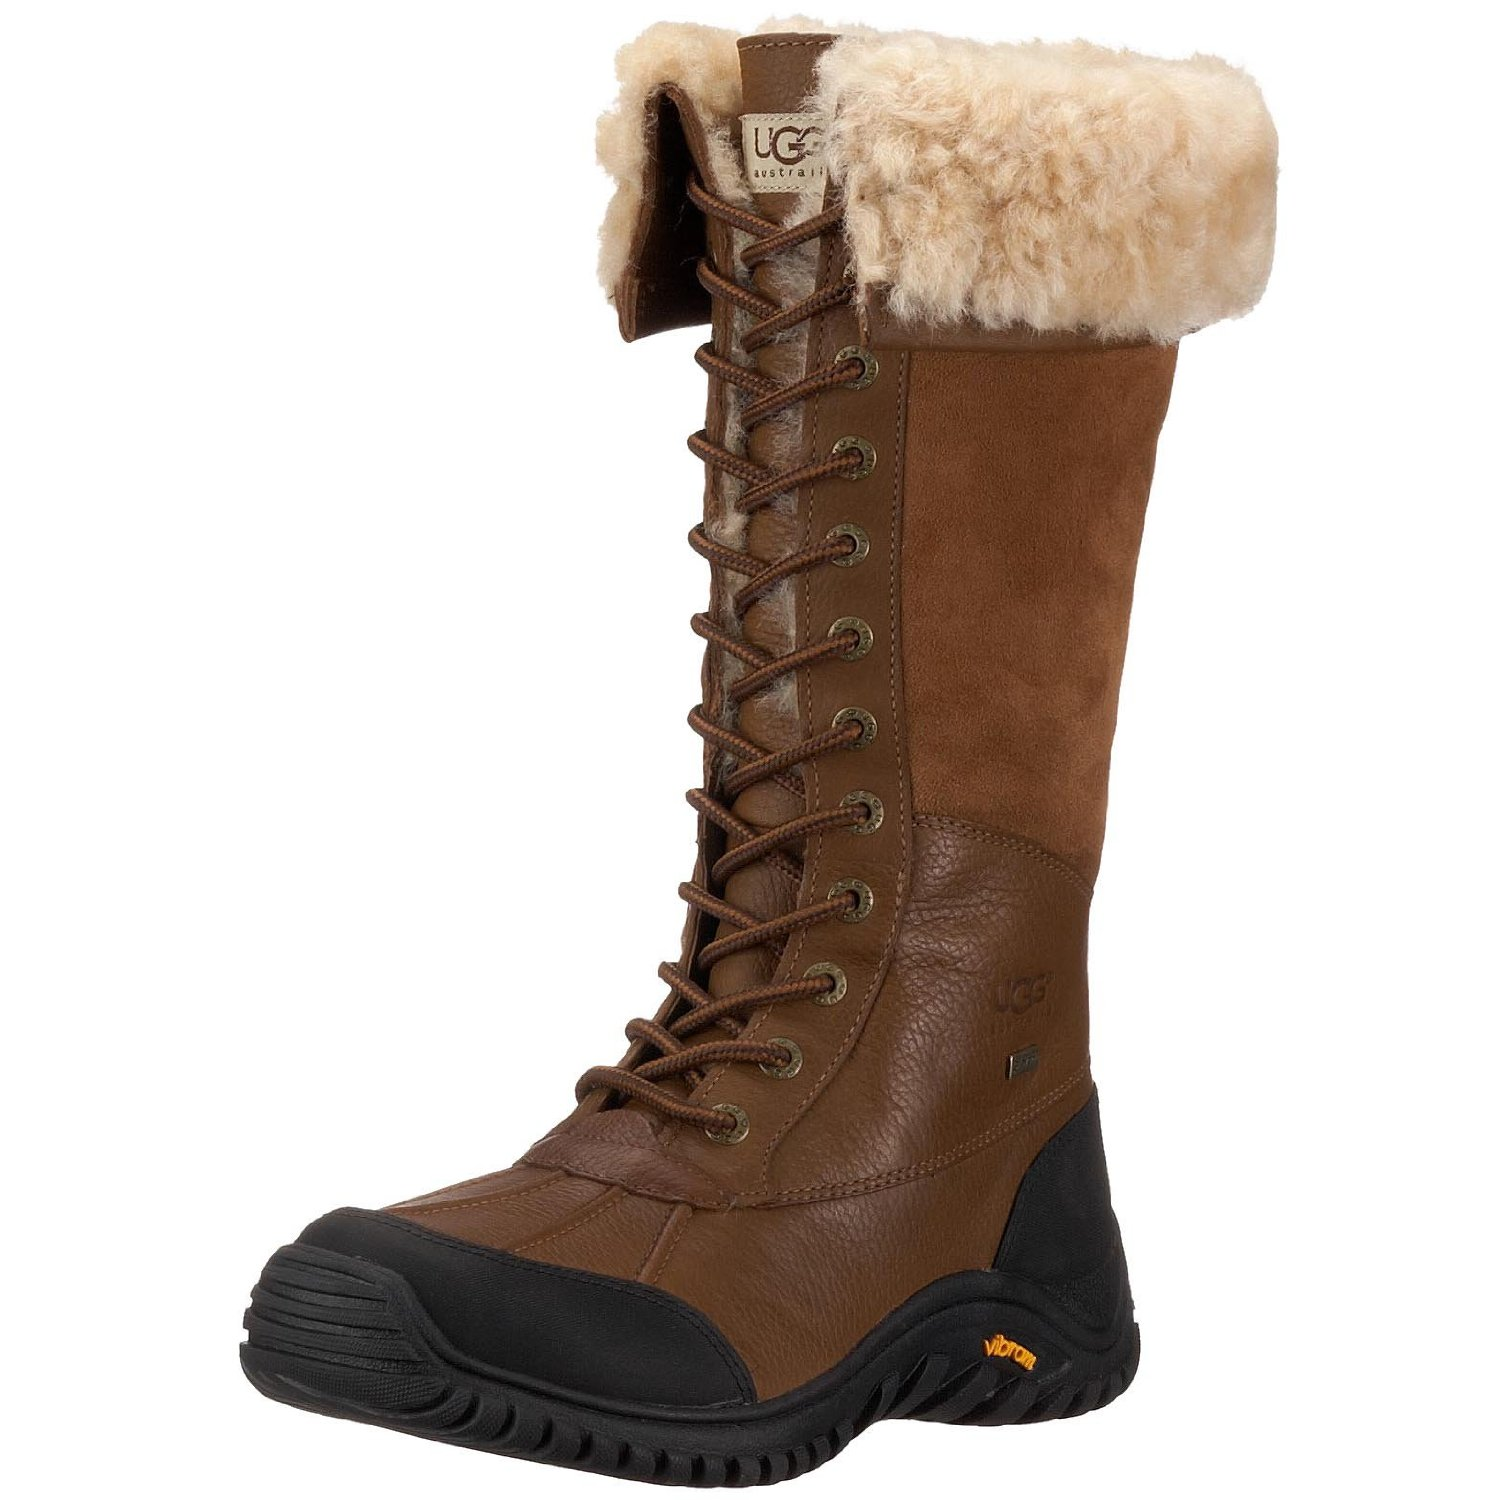 Luxury Slip Your Feet Into The Soft, Cozy Comfort Of The Classic Tall Boots By UGG Australia, And Discover Why Theyre Loved The World Over! Always Comfy, Always Chic, The Classics Feel Like A Favorite From The Very First Wear Made Of Genuine